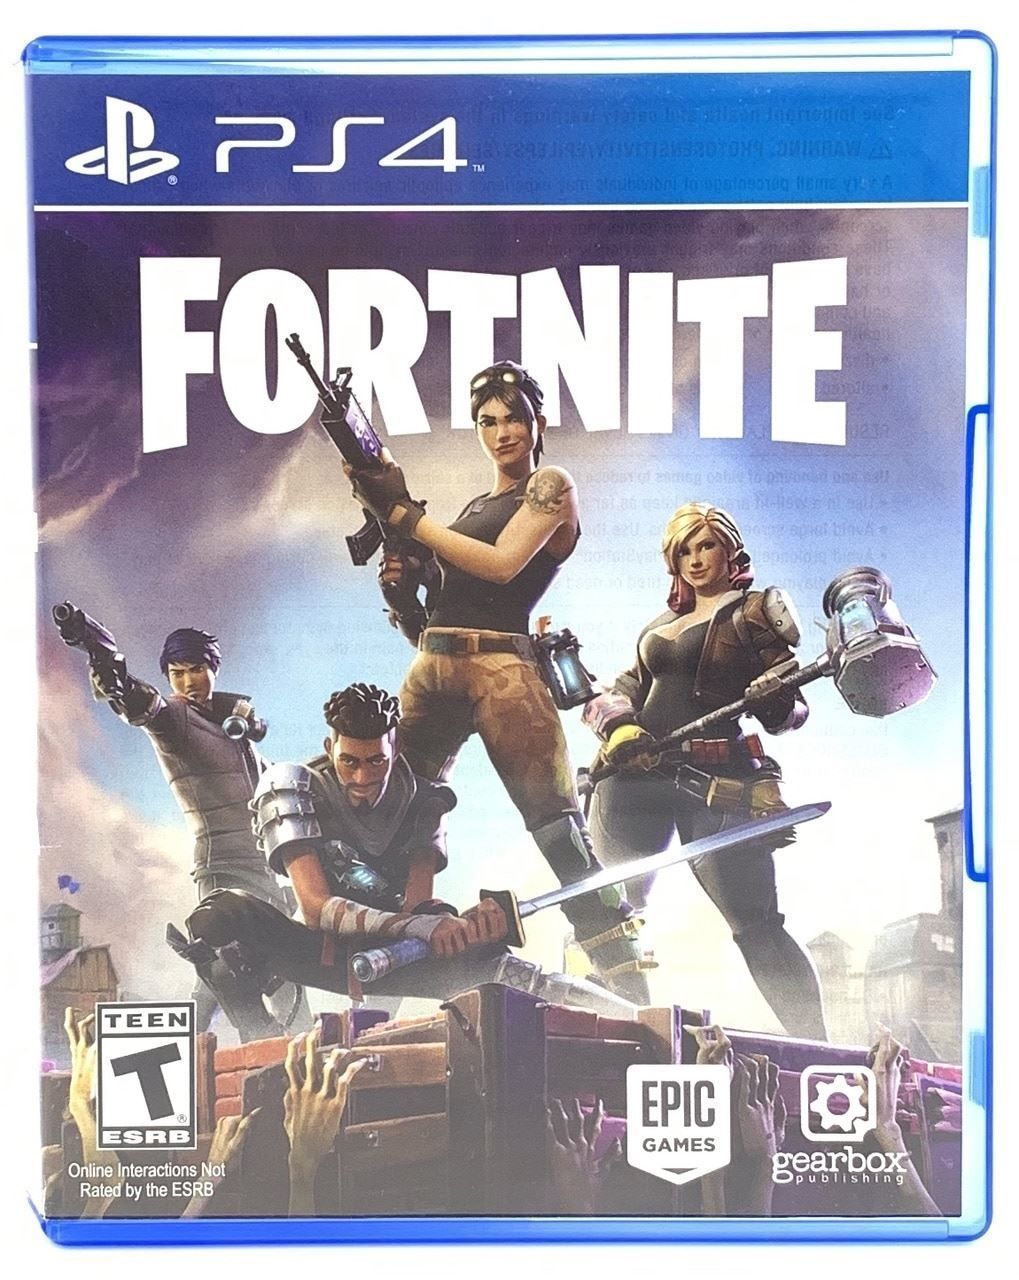 Rare Fortnite Sony Playstation 4 Physical Media Game Disc